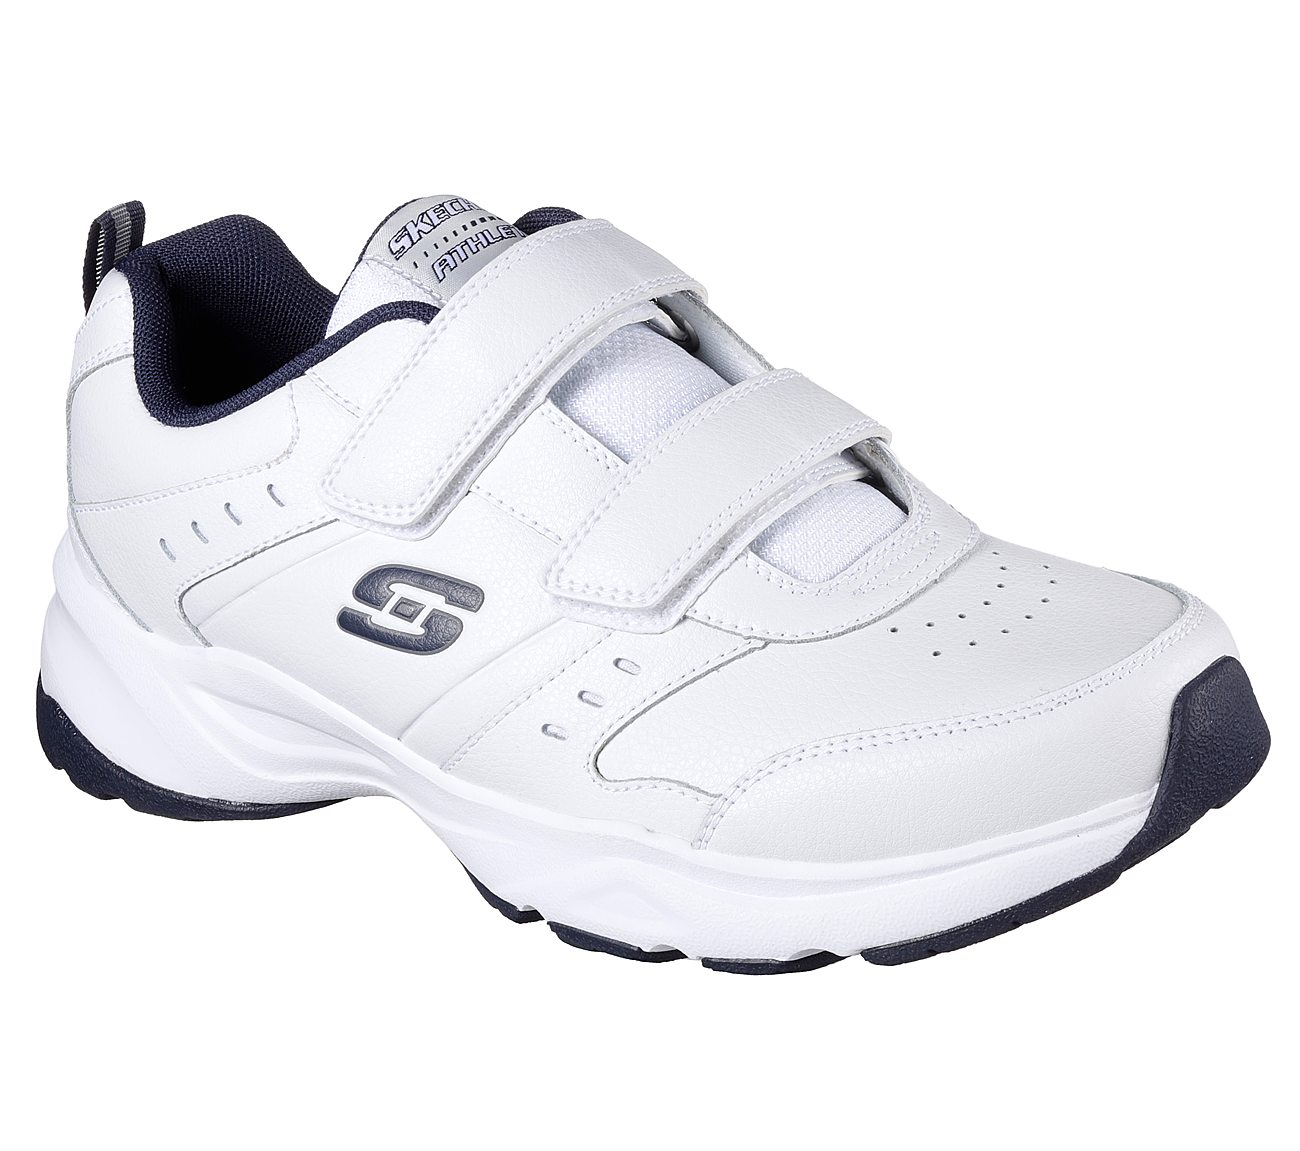 Mayo Enriquecer Patatas  skechers tennis shoes with velcro straps > Clearance shop